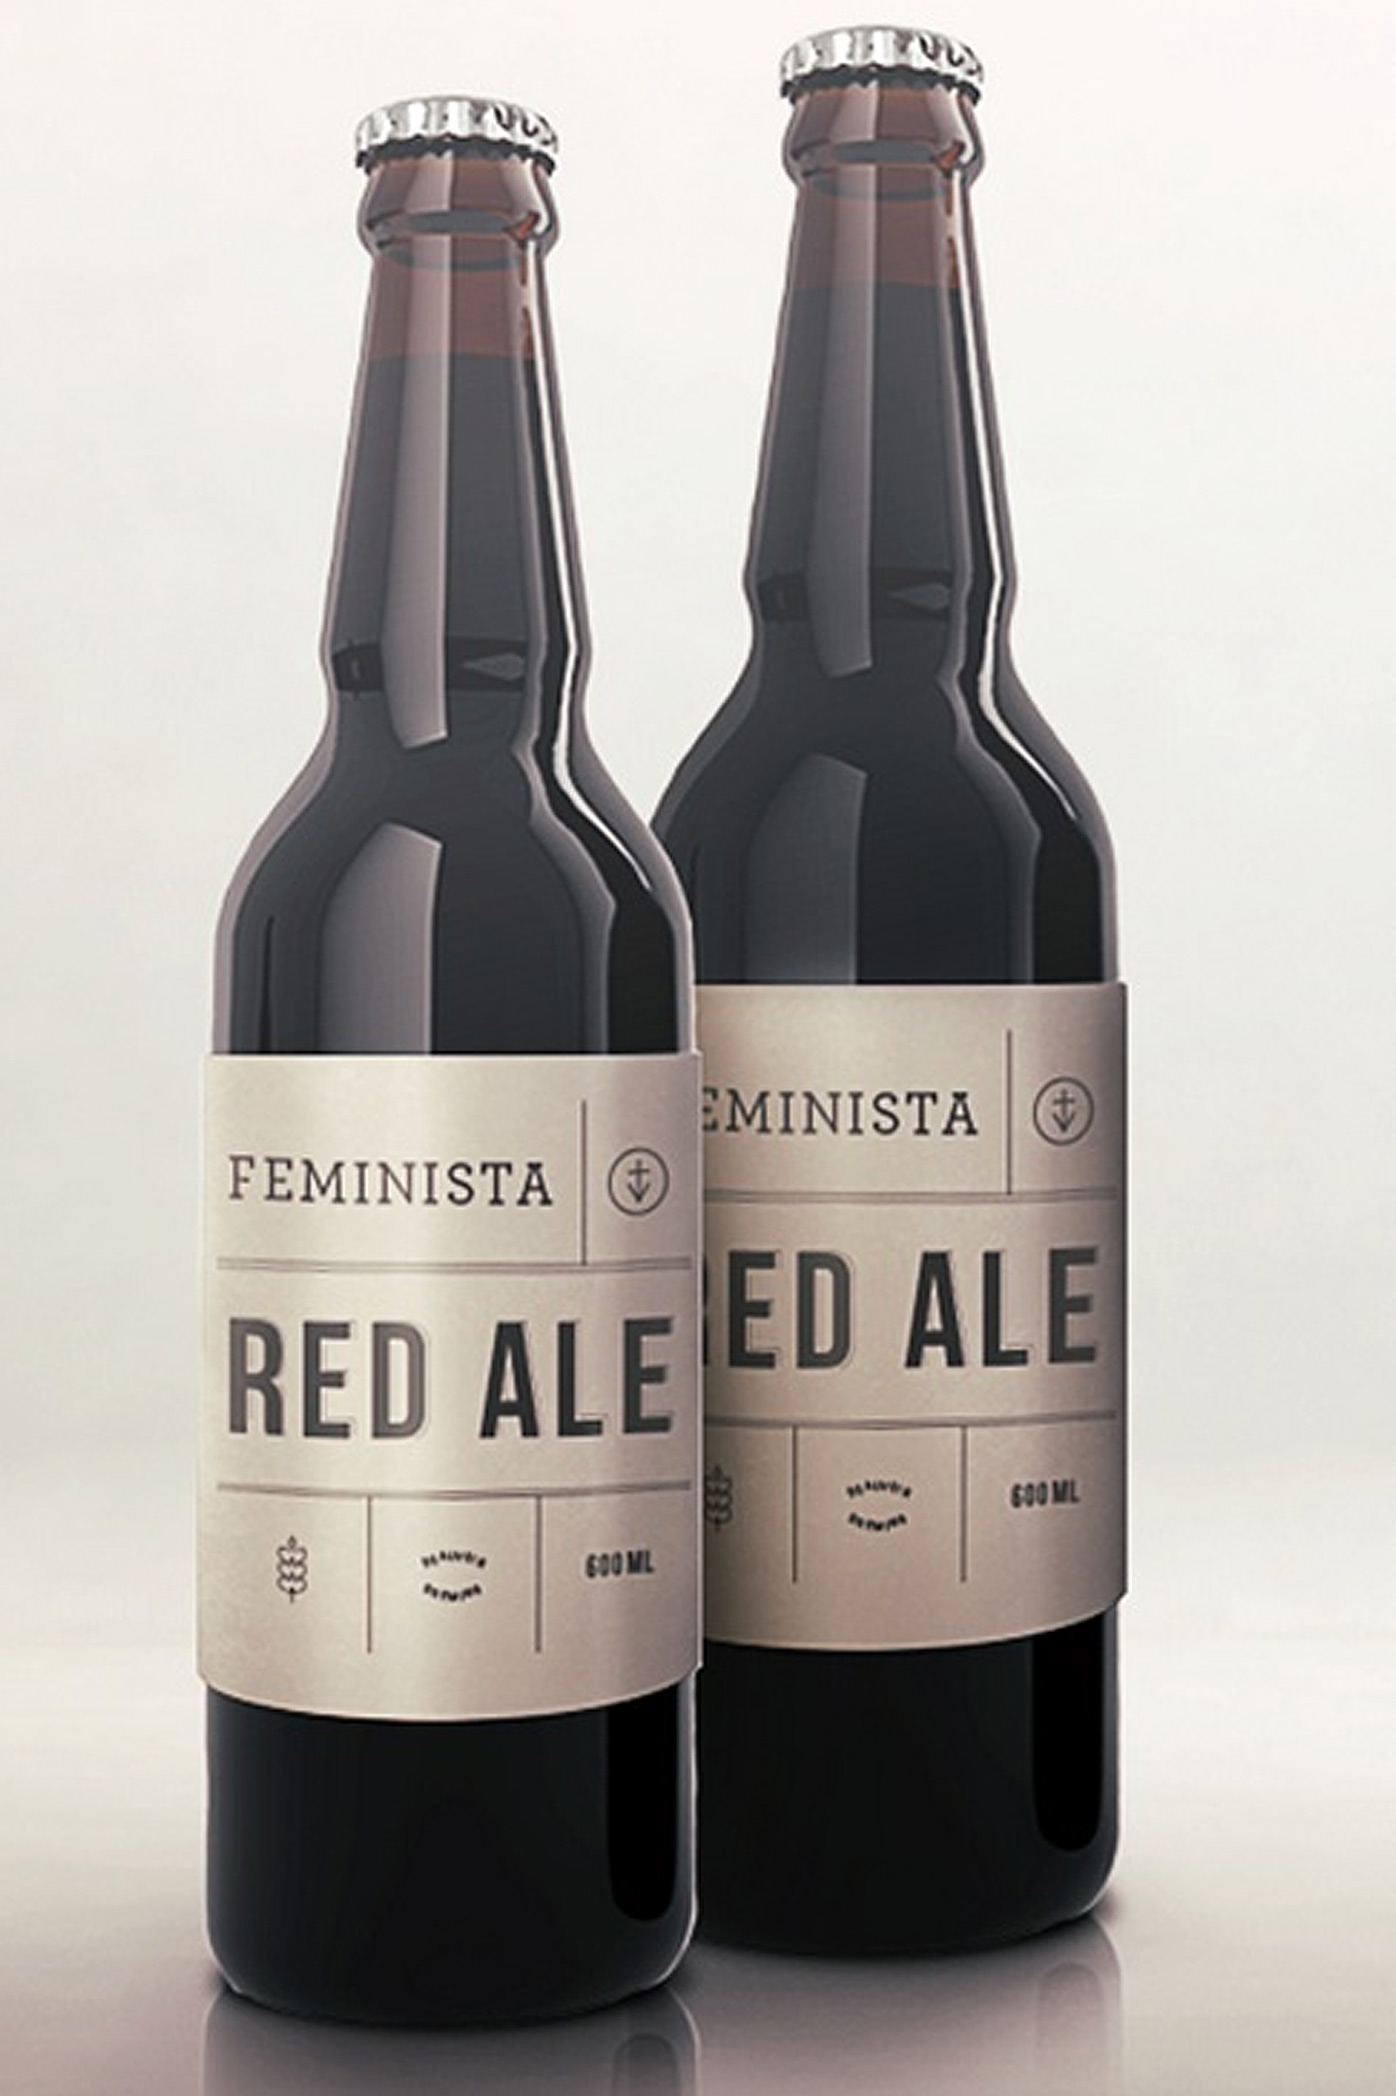 Activists launch 'feminist beer' to challenge sexism